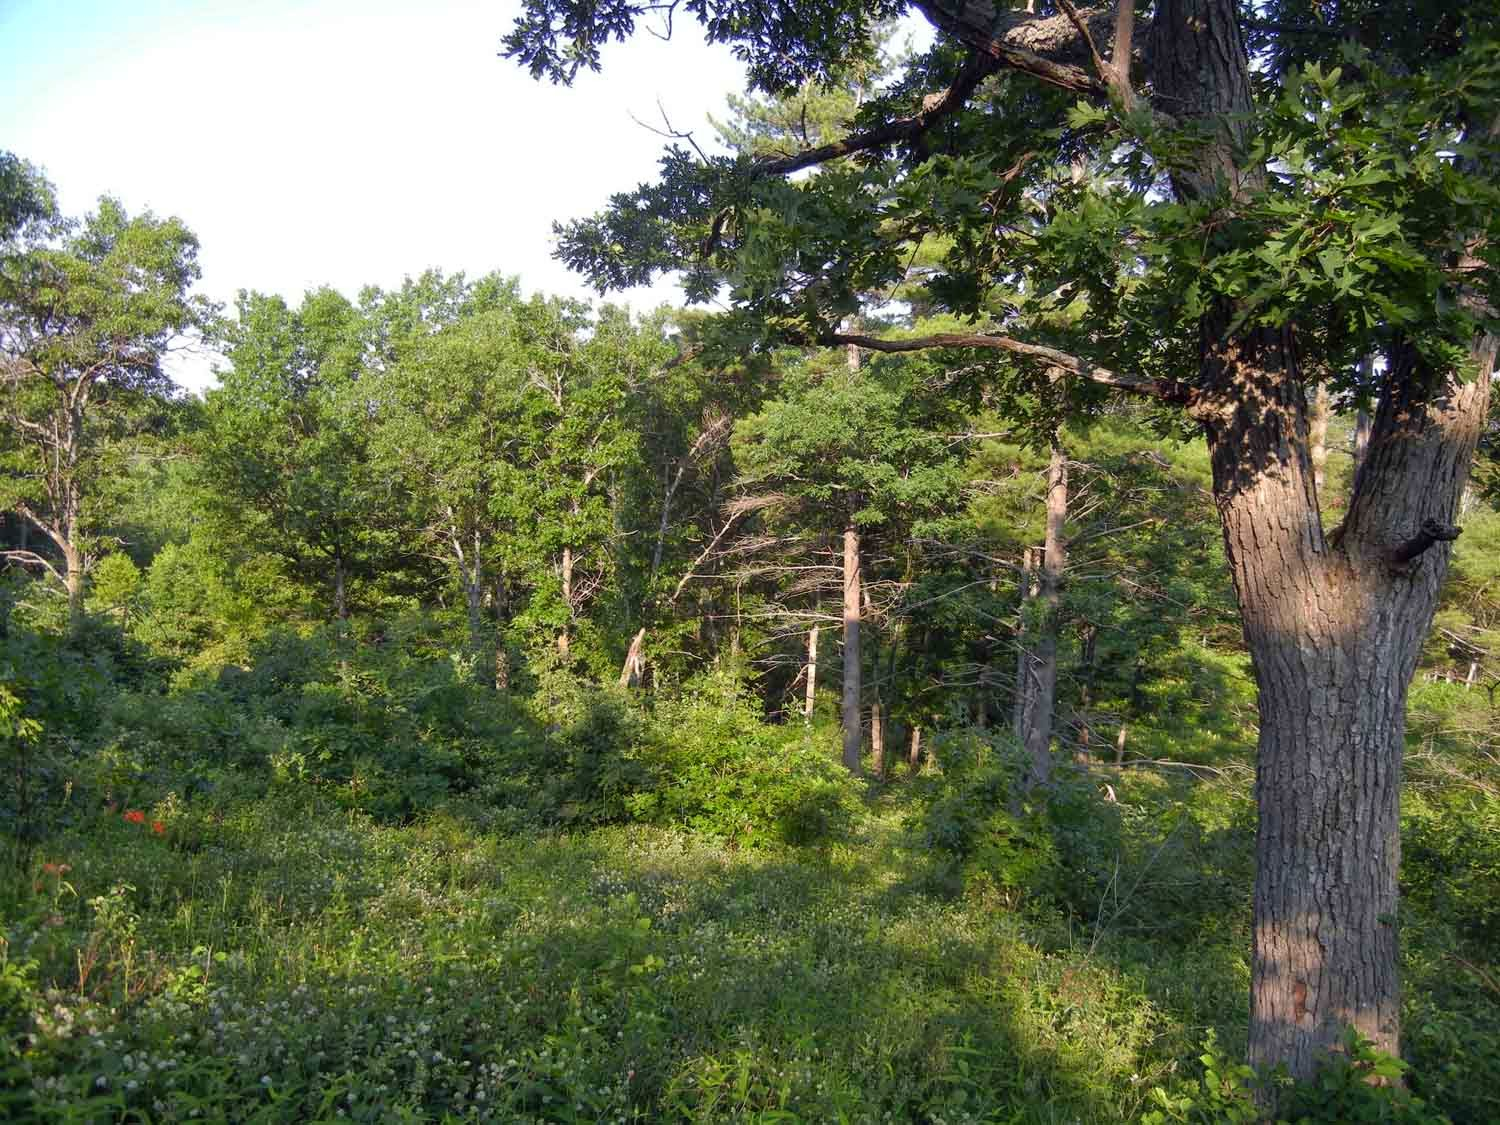 Black oak savanna at the Alderville site